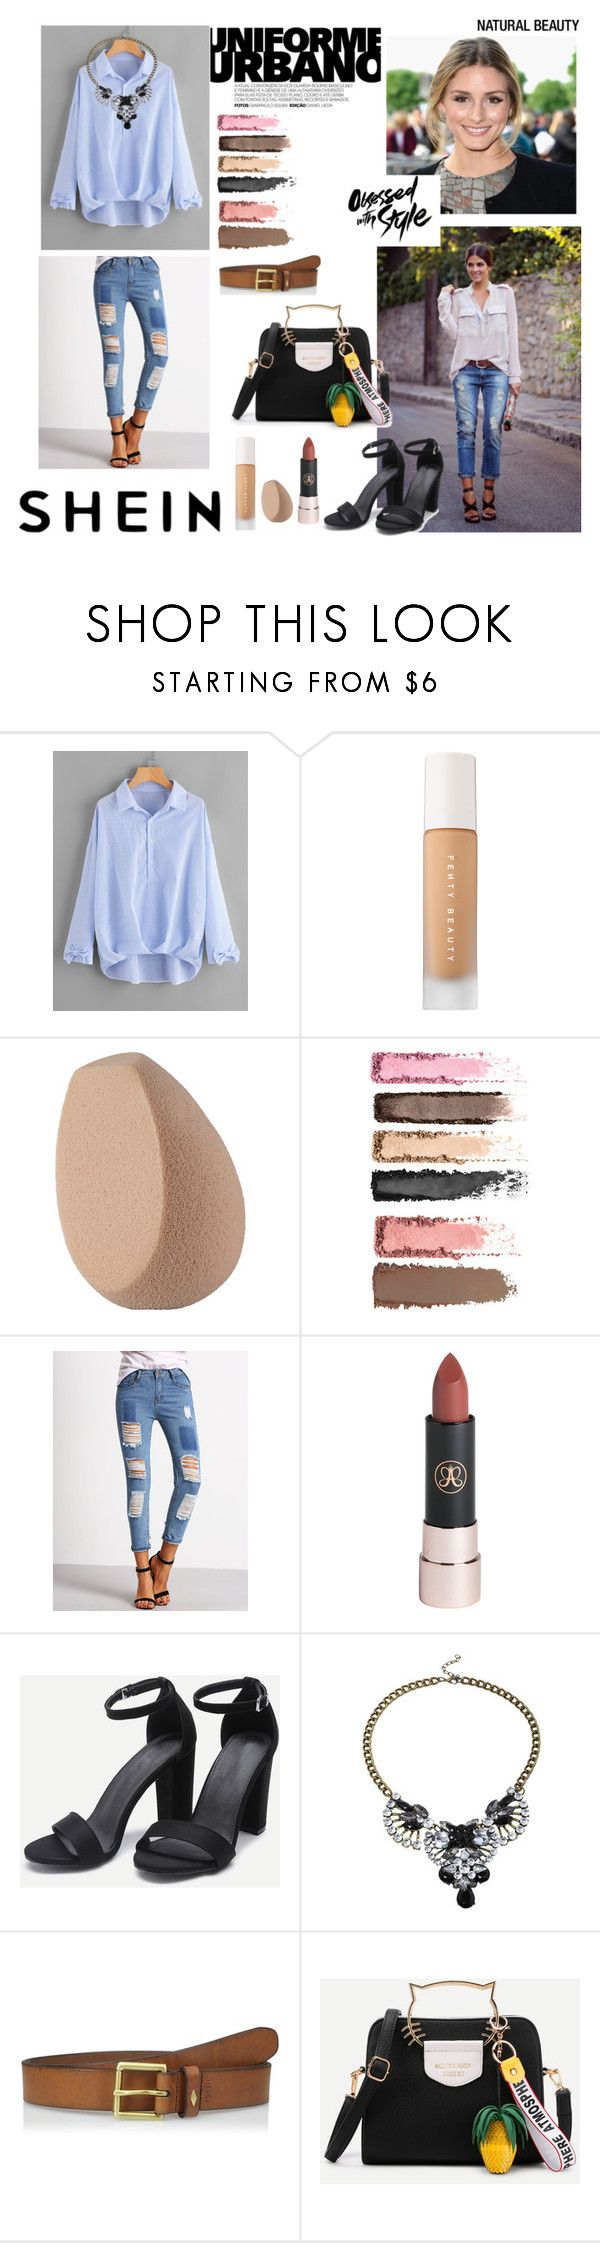 NATURAL BEAUTY by paisleyvelvetandlace on Polyvore featuring Puma